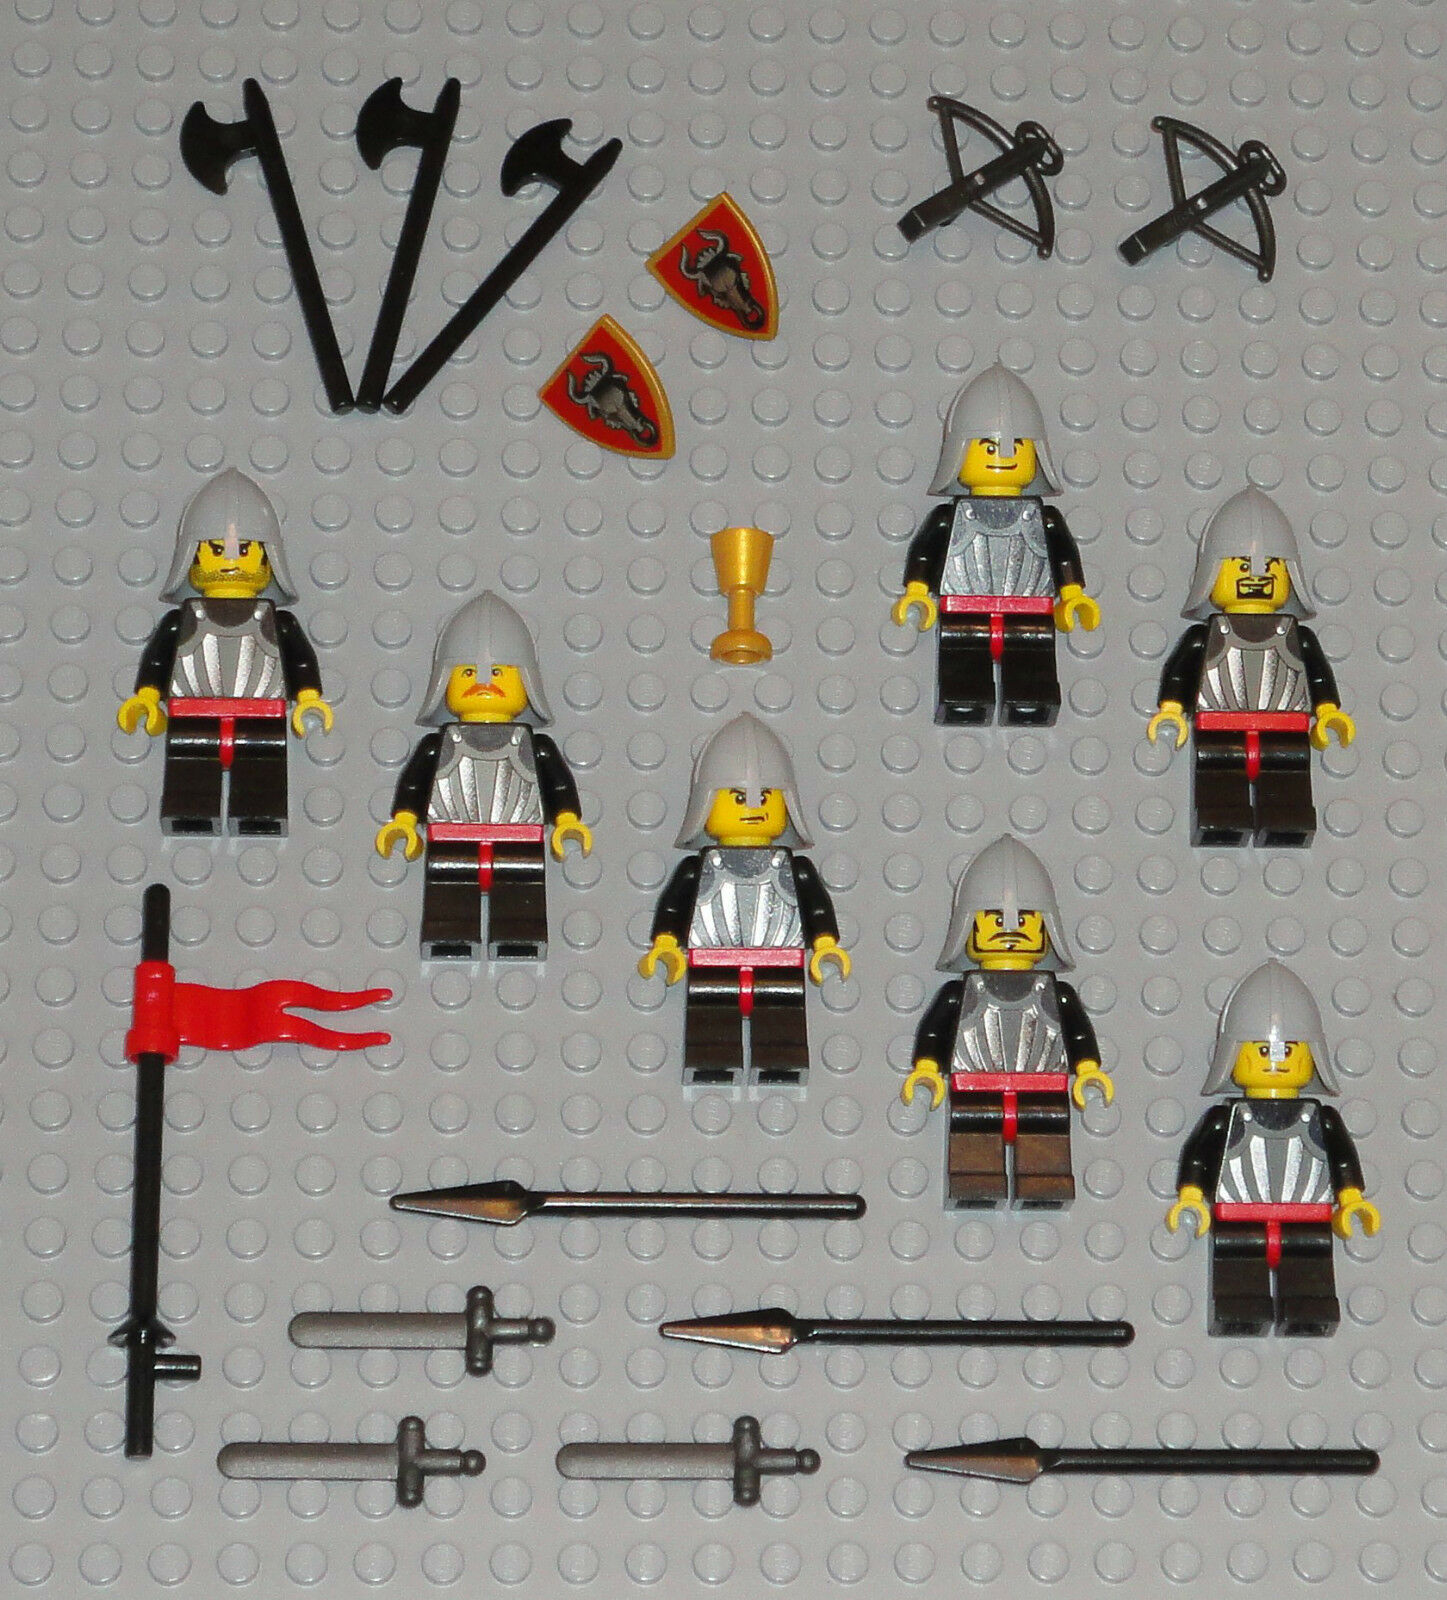 LEGO Minifigures Lot 7 Bull Knights Army Castle Castle Castle Guys Lego Minifig People Swords 8507b5